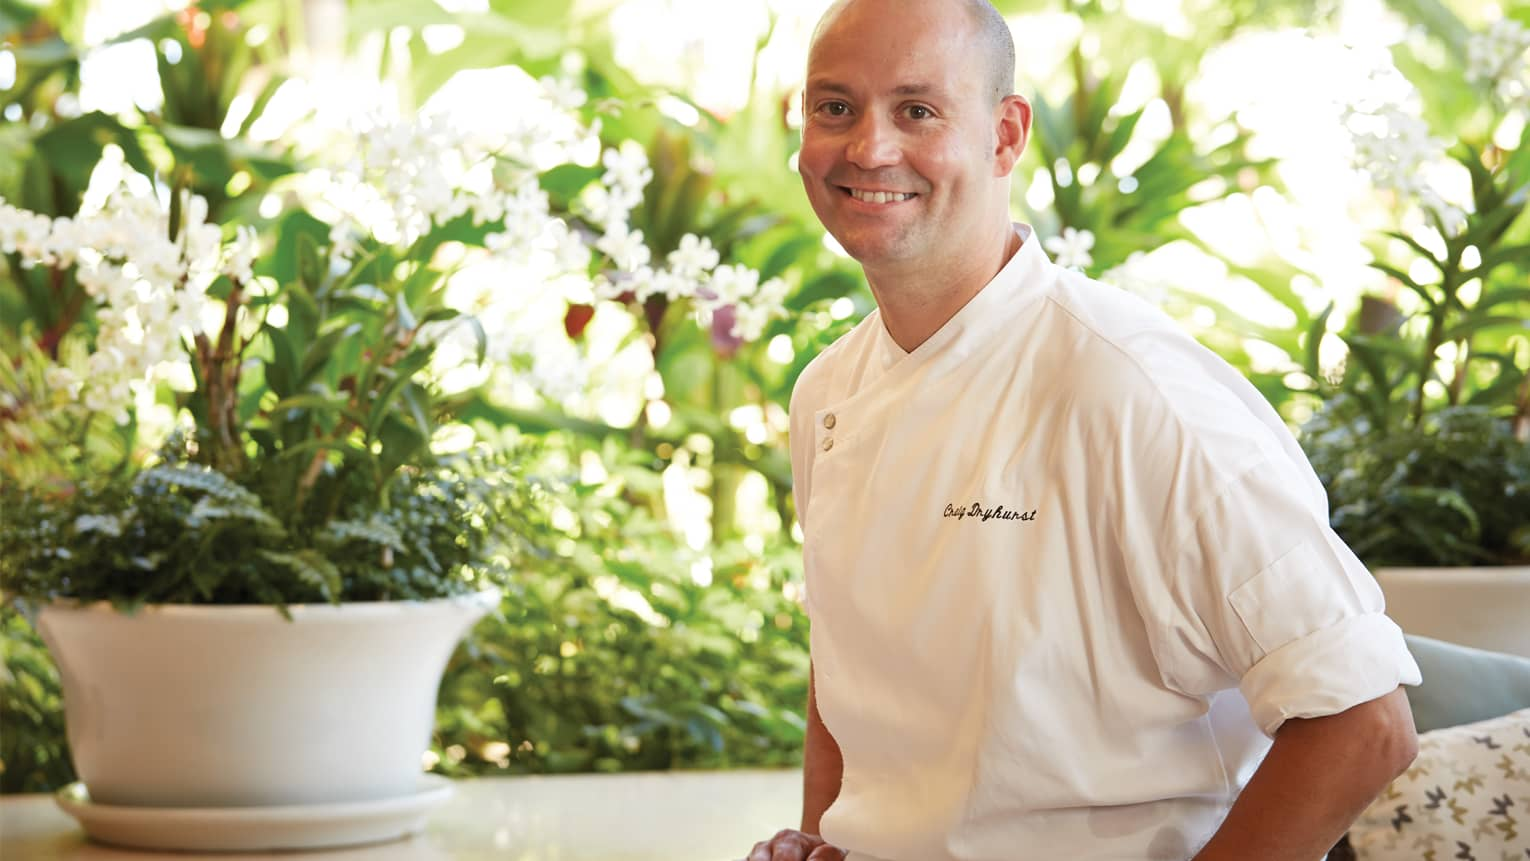 Portrait photo of Craig Dryhurst, Executive Chef on patio, white planter and flowers in background